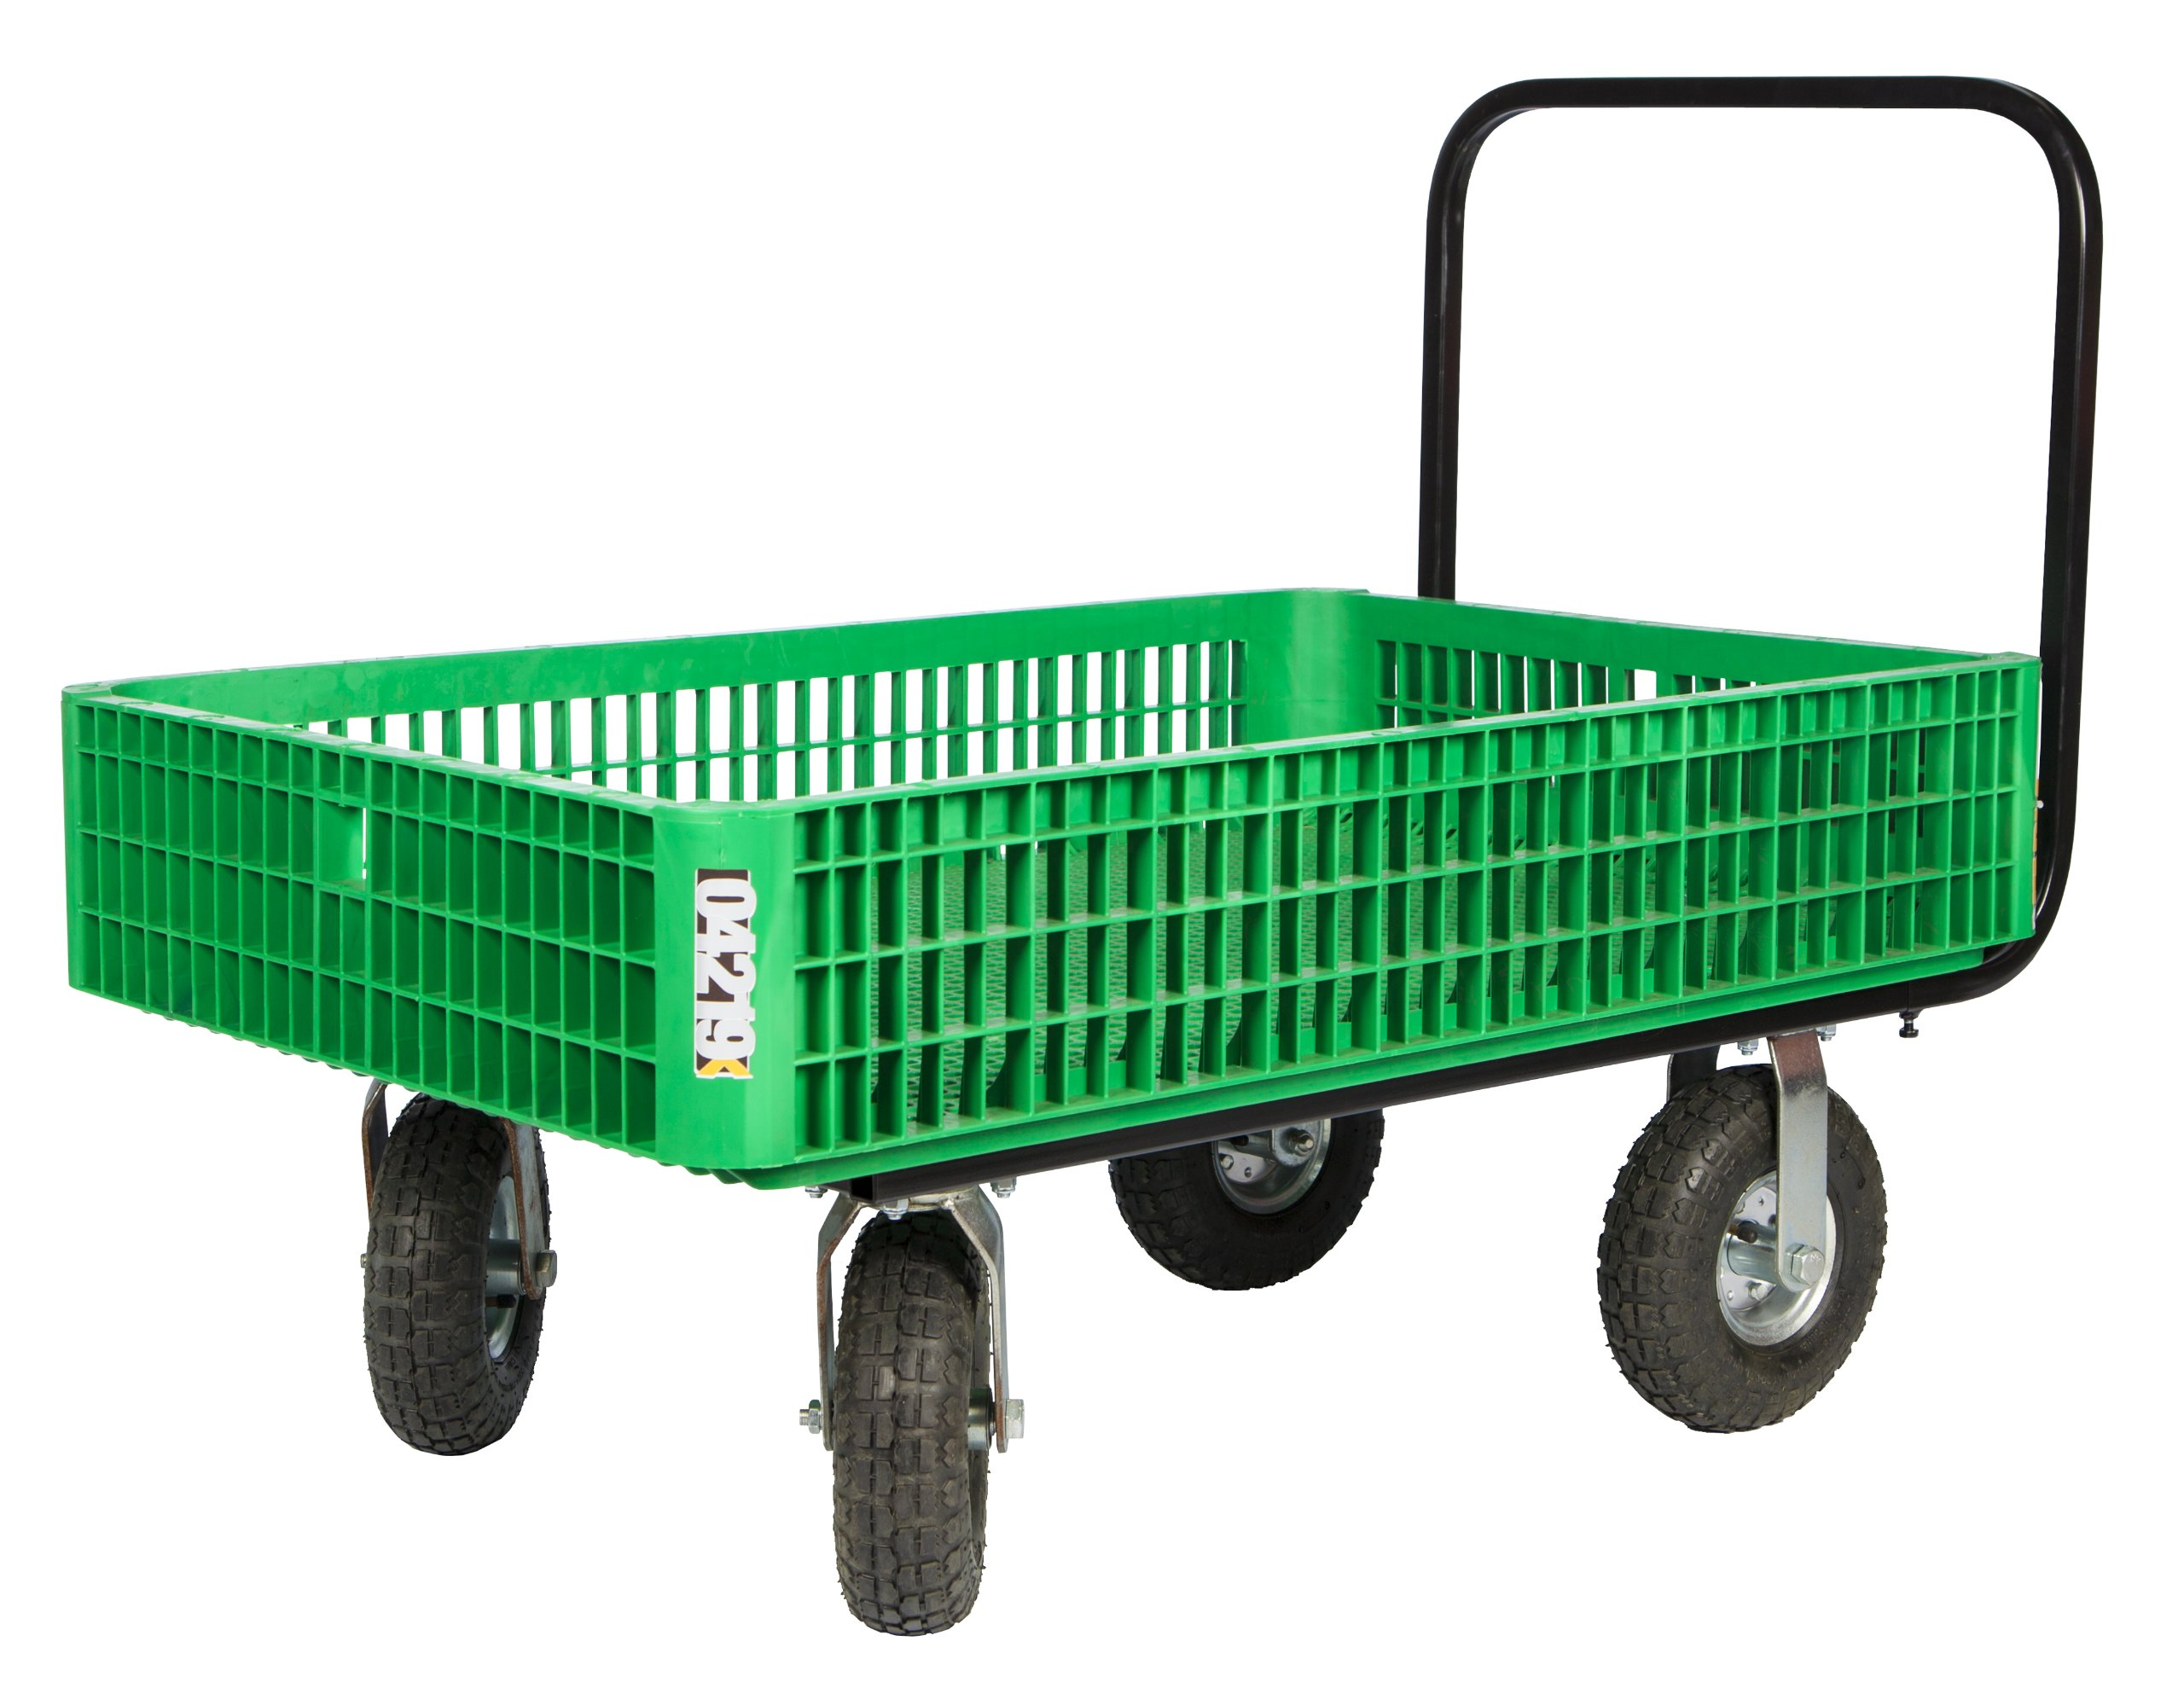 Farm Tuff 30-Inch by 46-Inch Crate Wagon with 4-Inch by 10-Inch Tires, Green or Grey